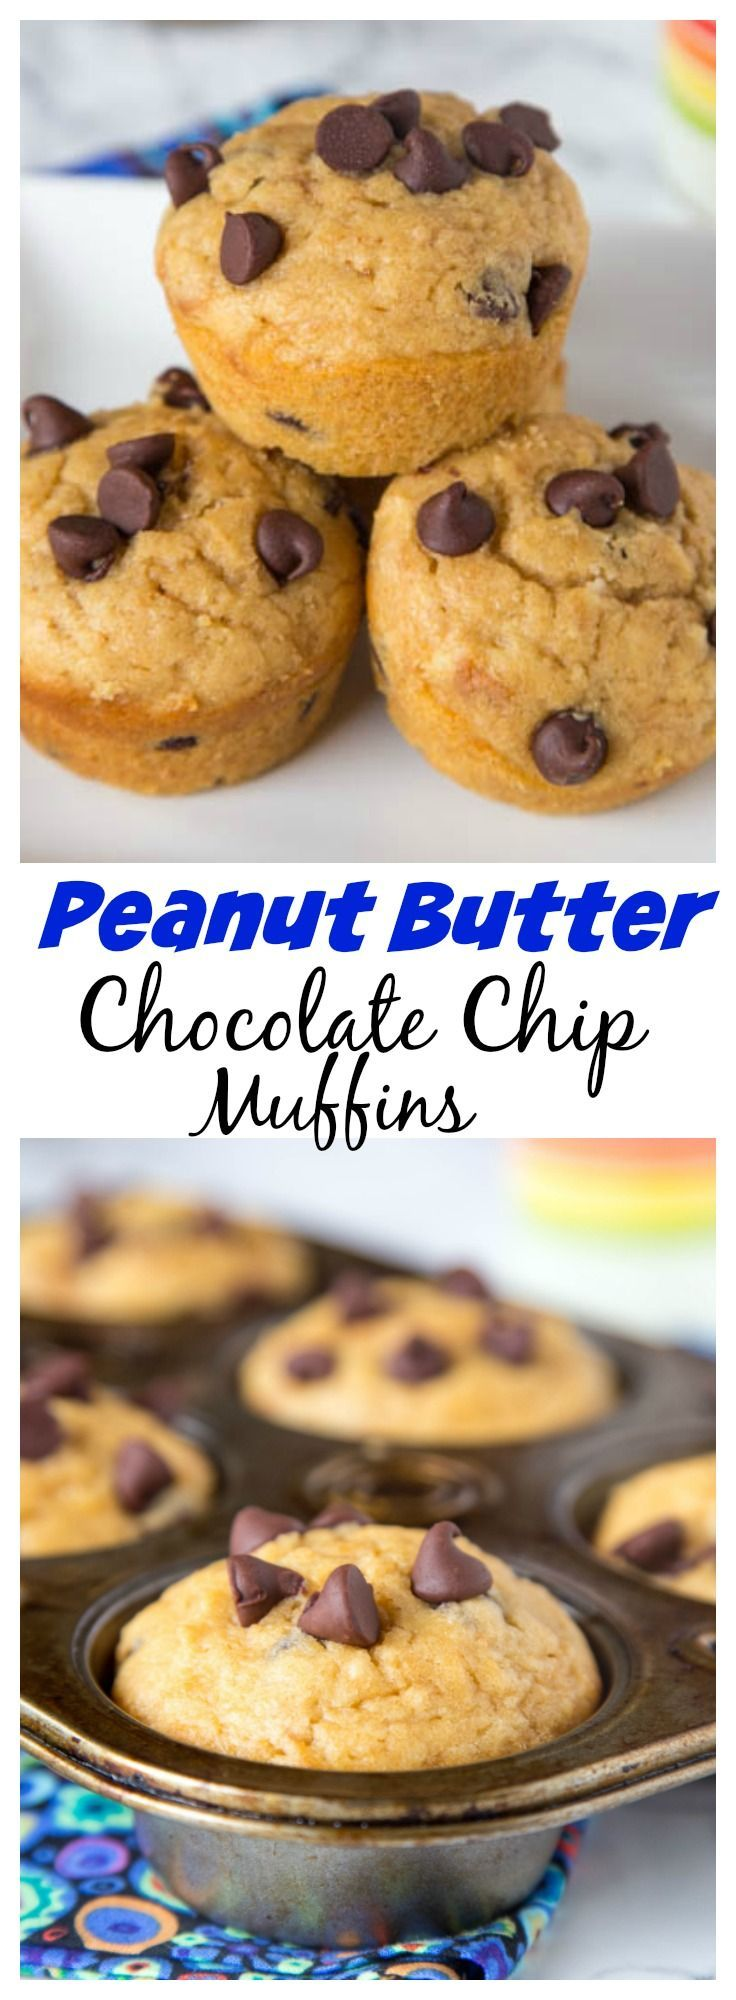 Peanut Butter Chocolate Chip Muffins – light and fluffy peanut butter muffins…